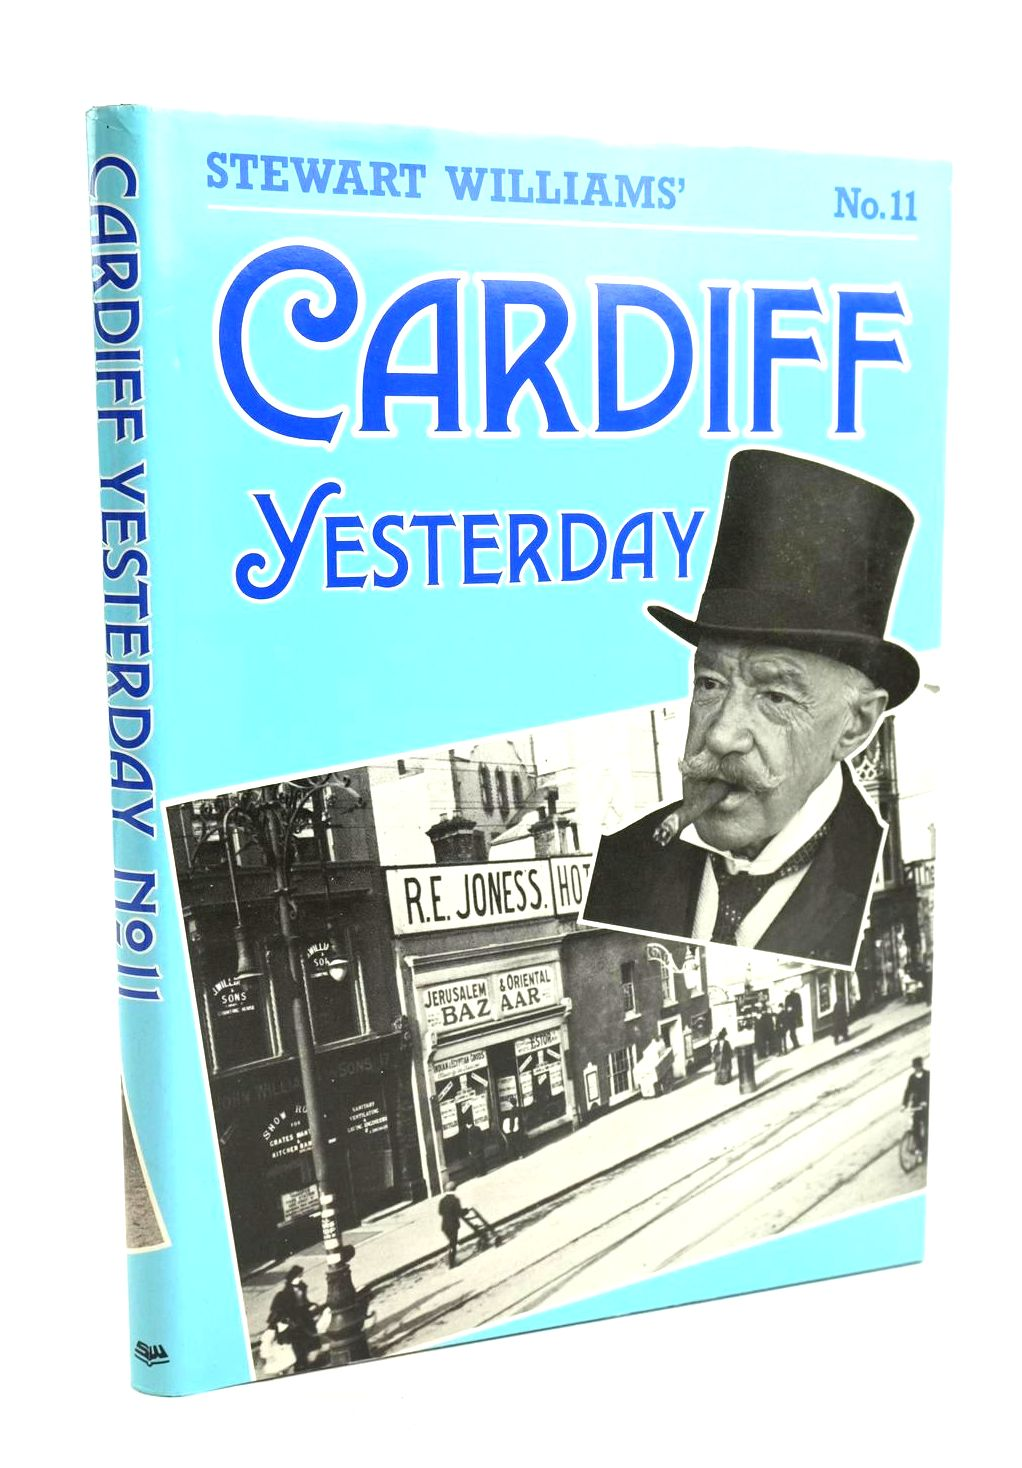 Photo of CARDIFF YESTERDAY No. 11 written by Williams, Stewart published by Stewart Williams (STOCK CODE: 1319730)  for sale by Stella & Rose's Books